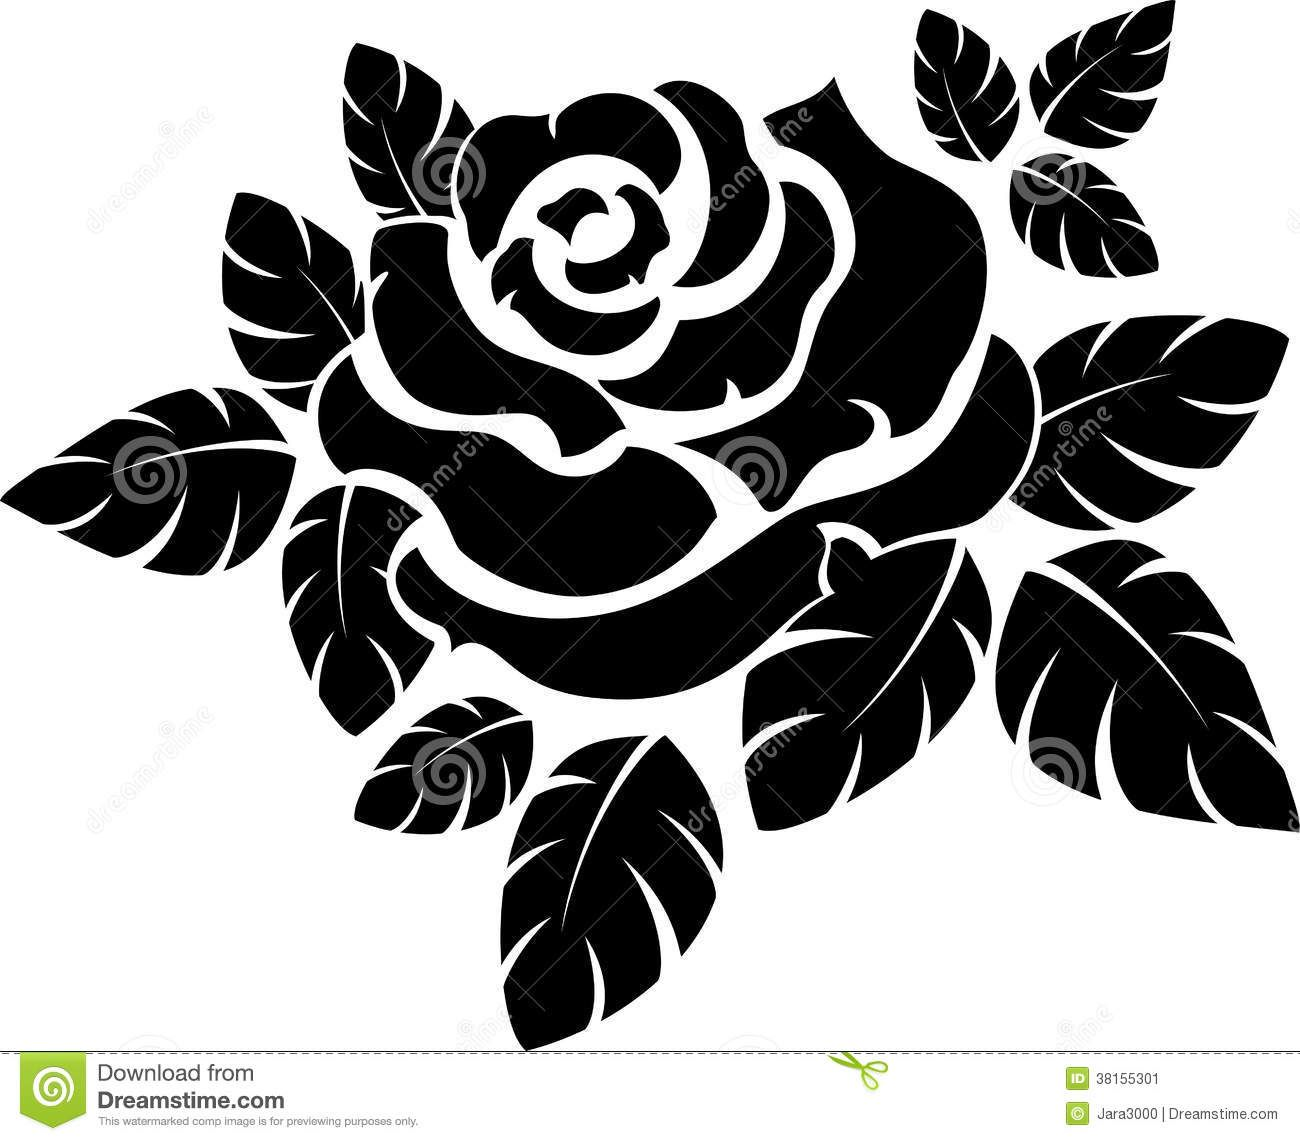 single flower vector Google Search Pinterest